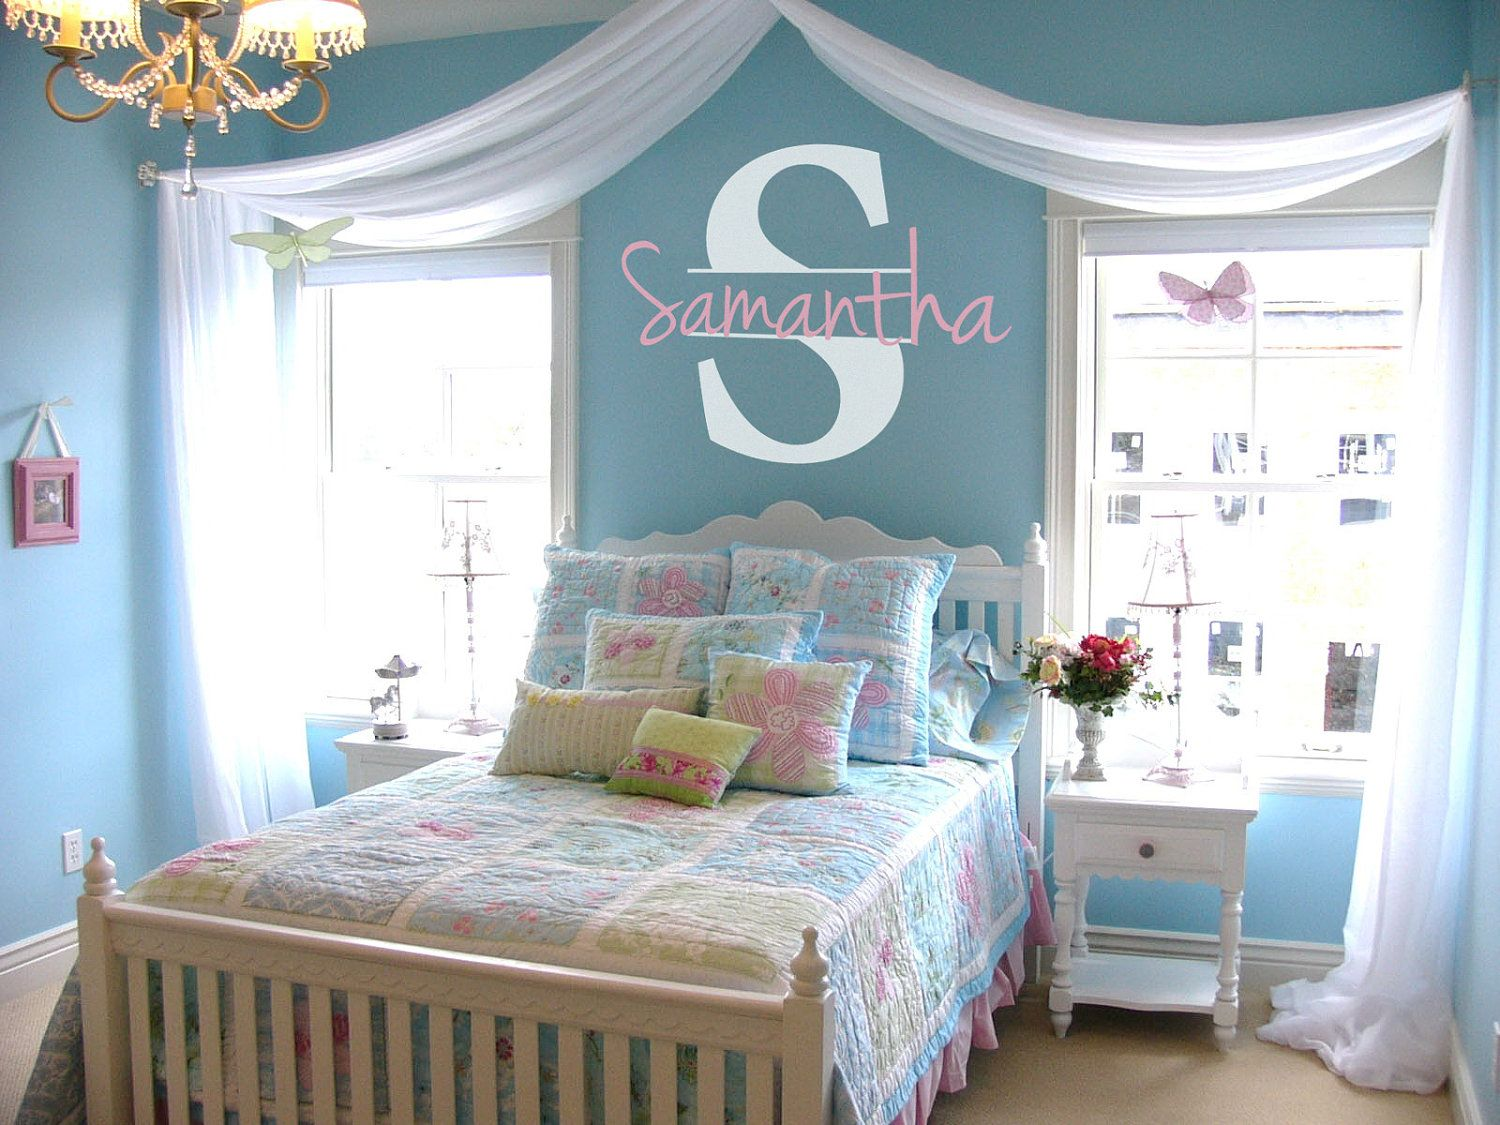 little+girl+room+decorating+ideas Personalized Name